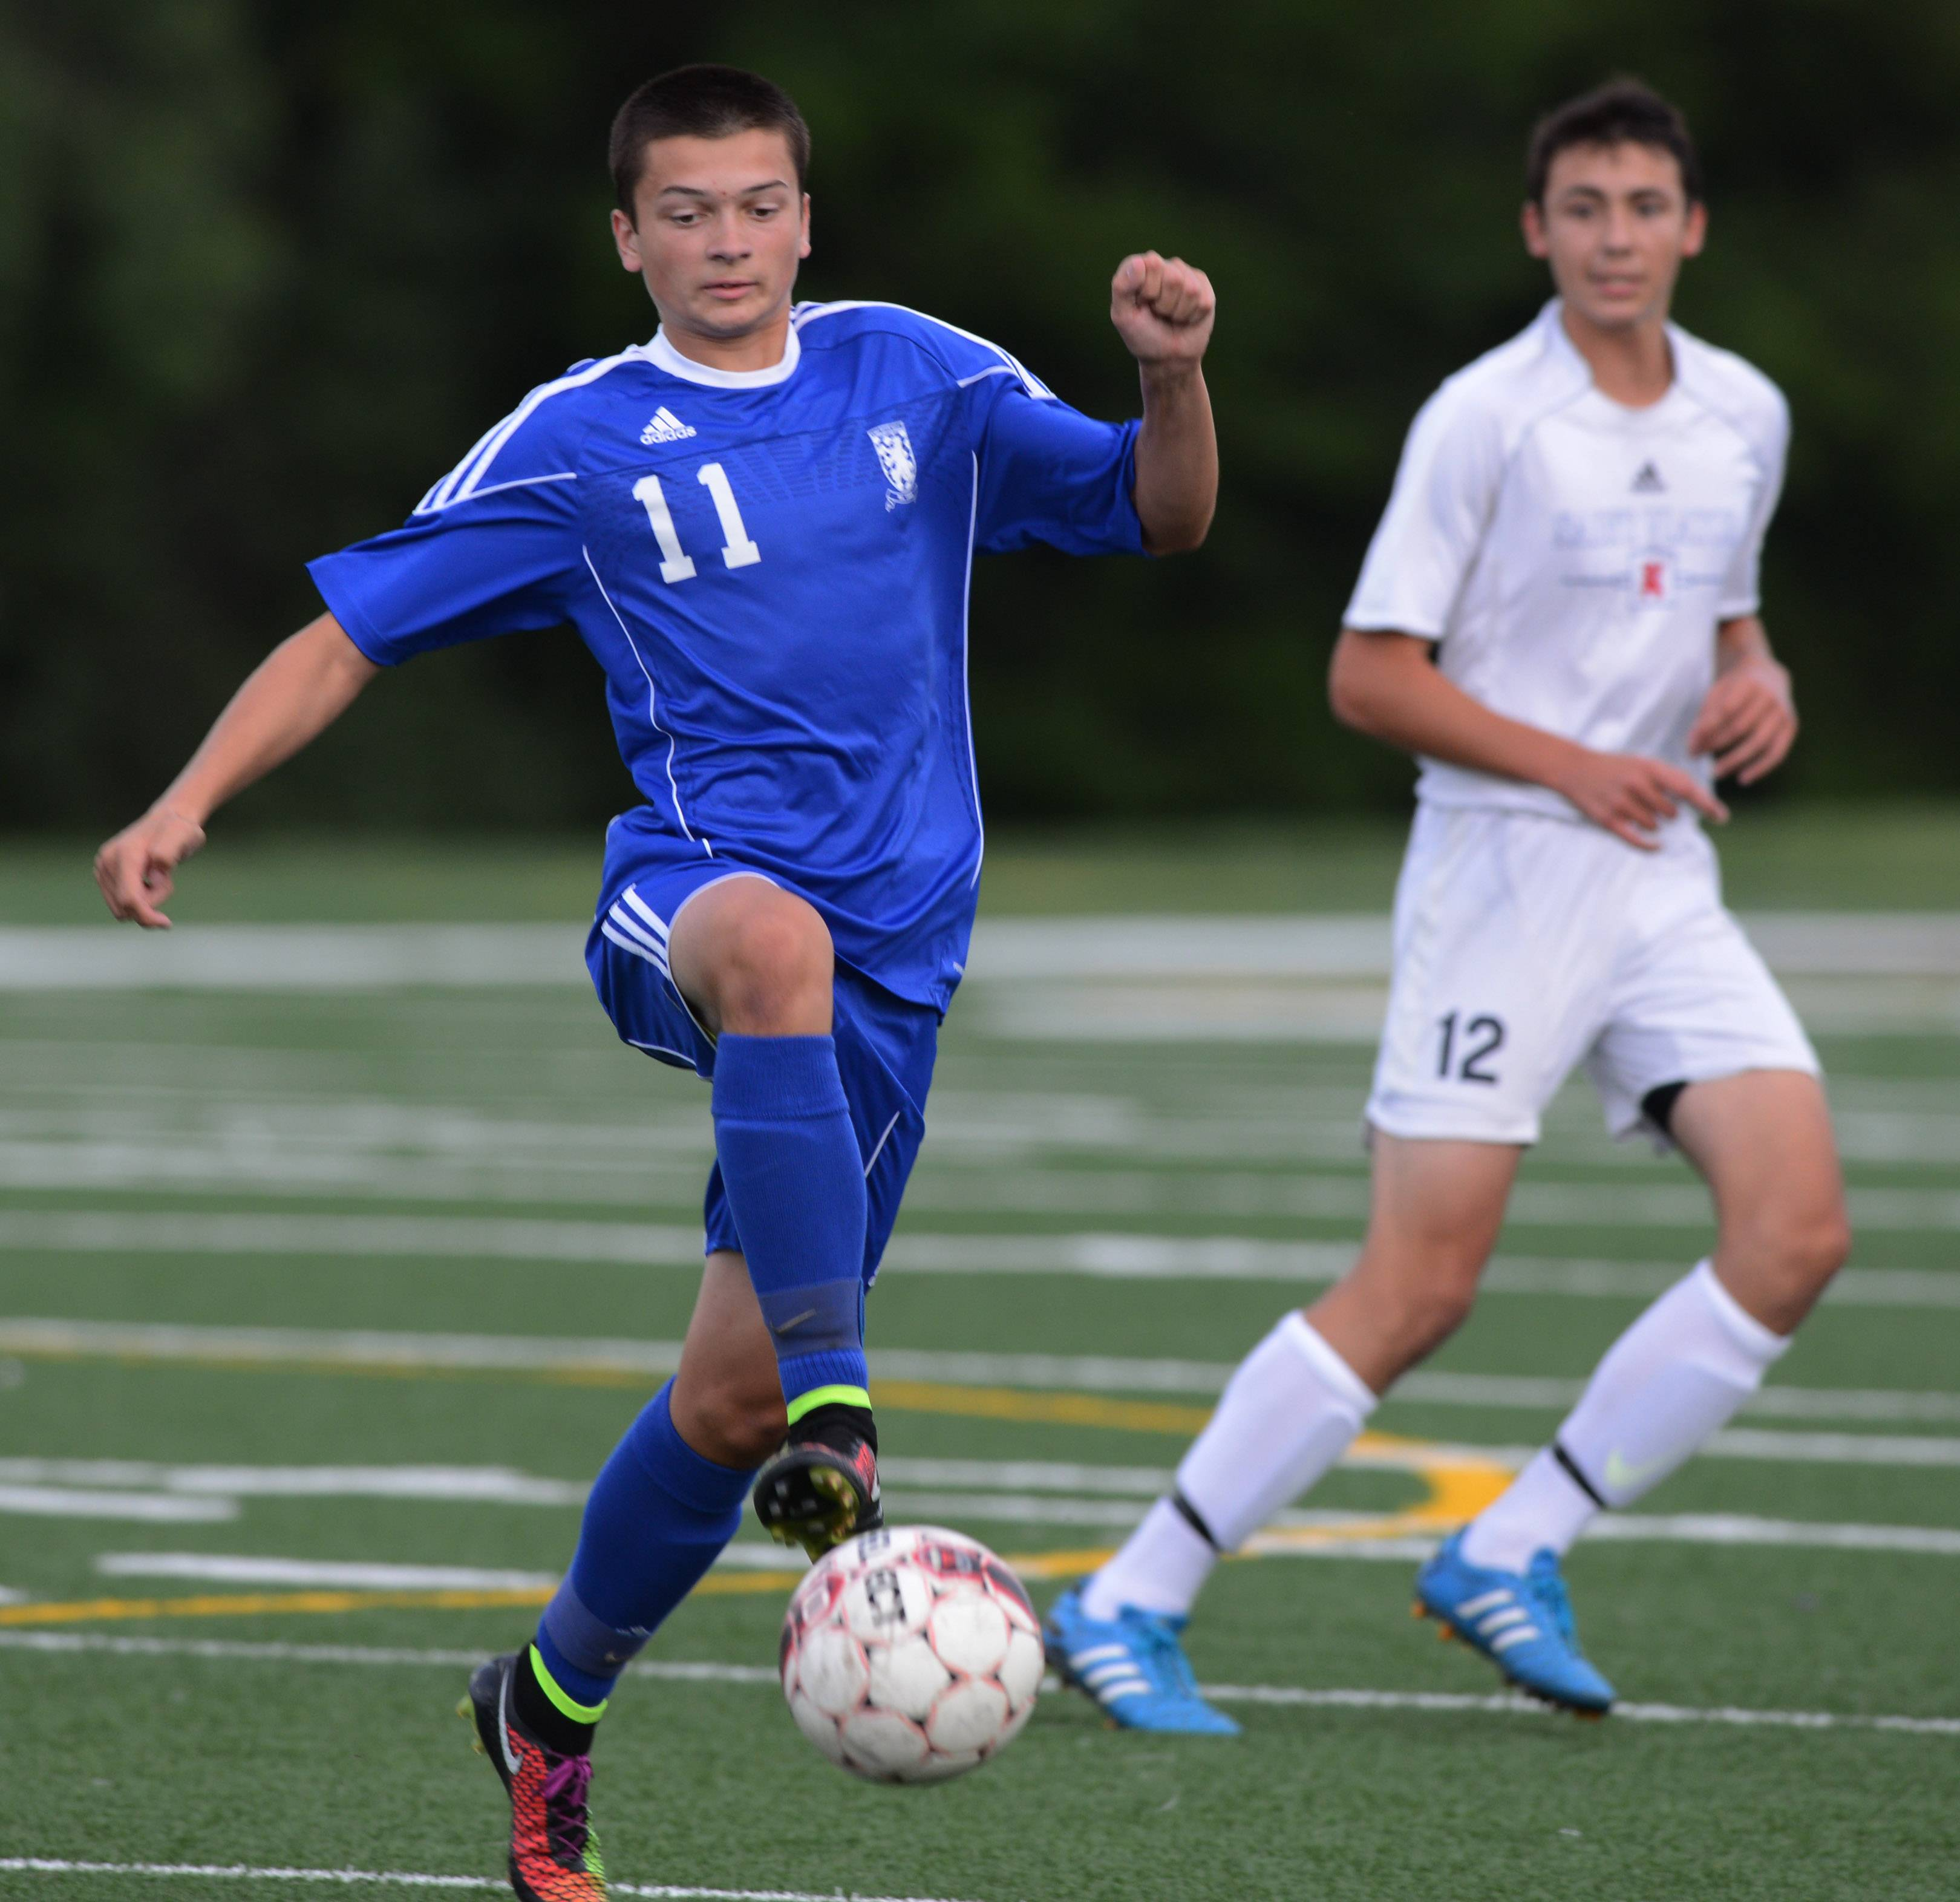 Lake Zurich's Collin Foreman controls the ball during Wednesday's game against St. Viator.